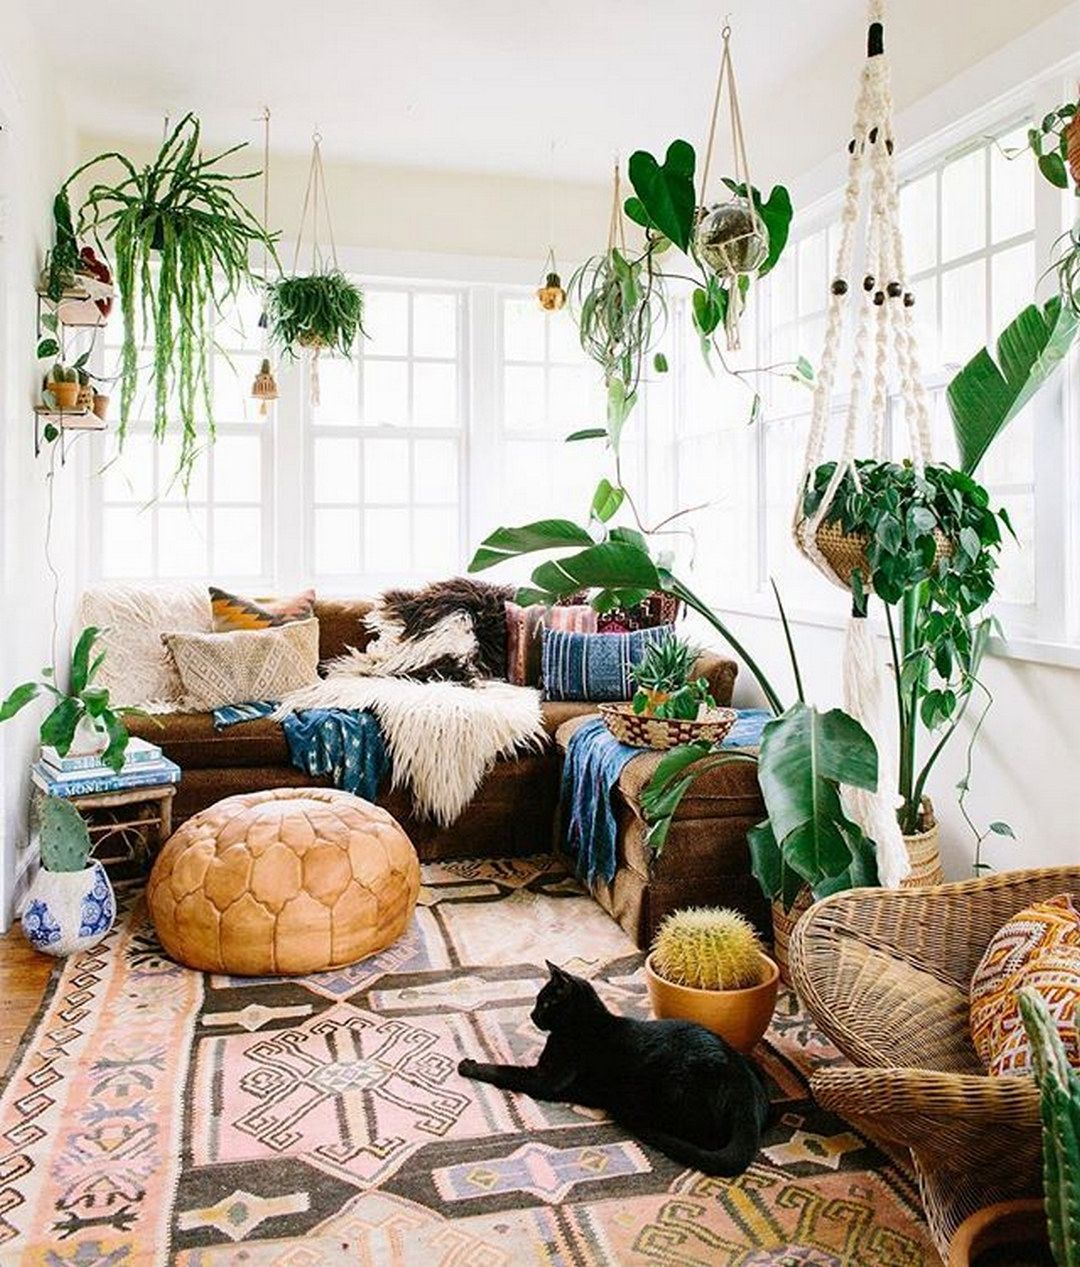 Aztec Kleed 45 Amazing Modern Bohemian Style Bedroom Decor Ideas You Should Check